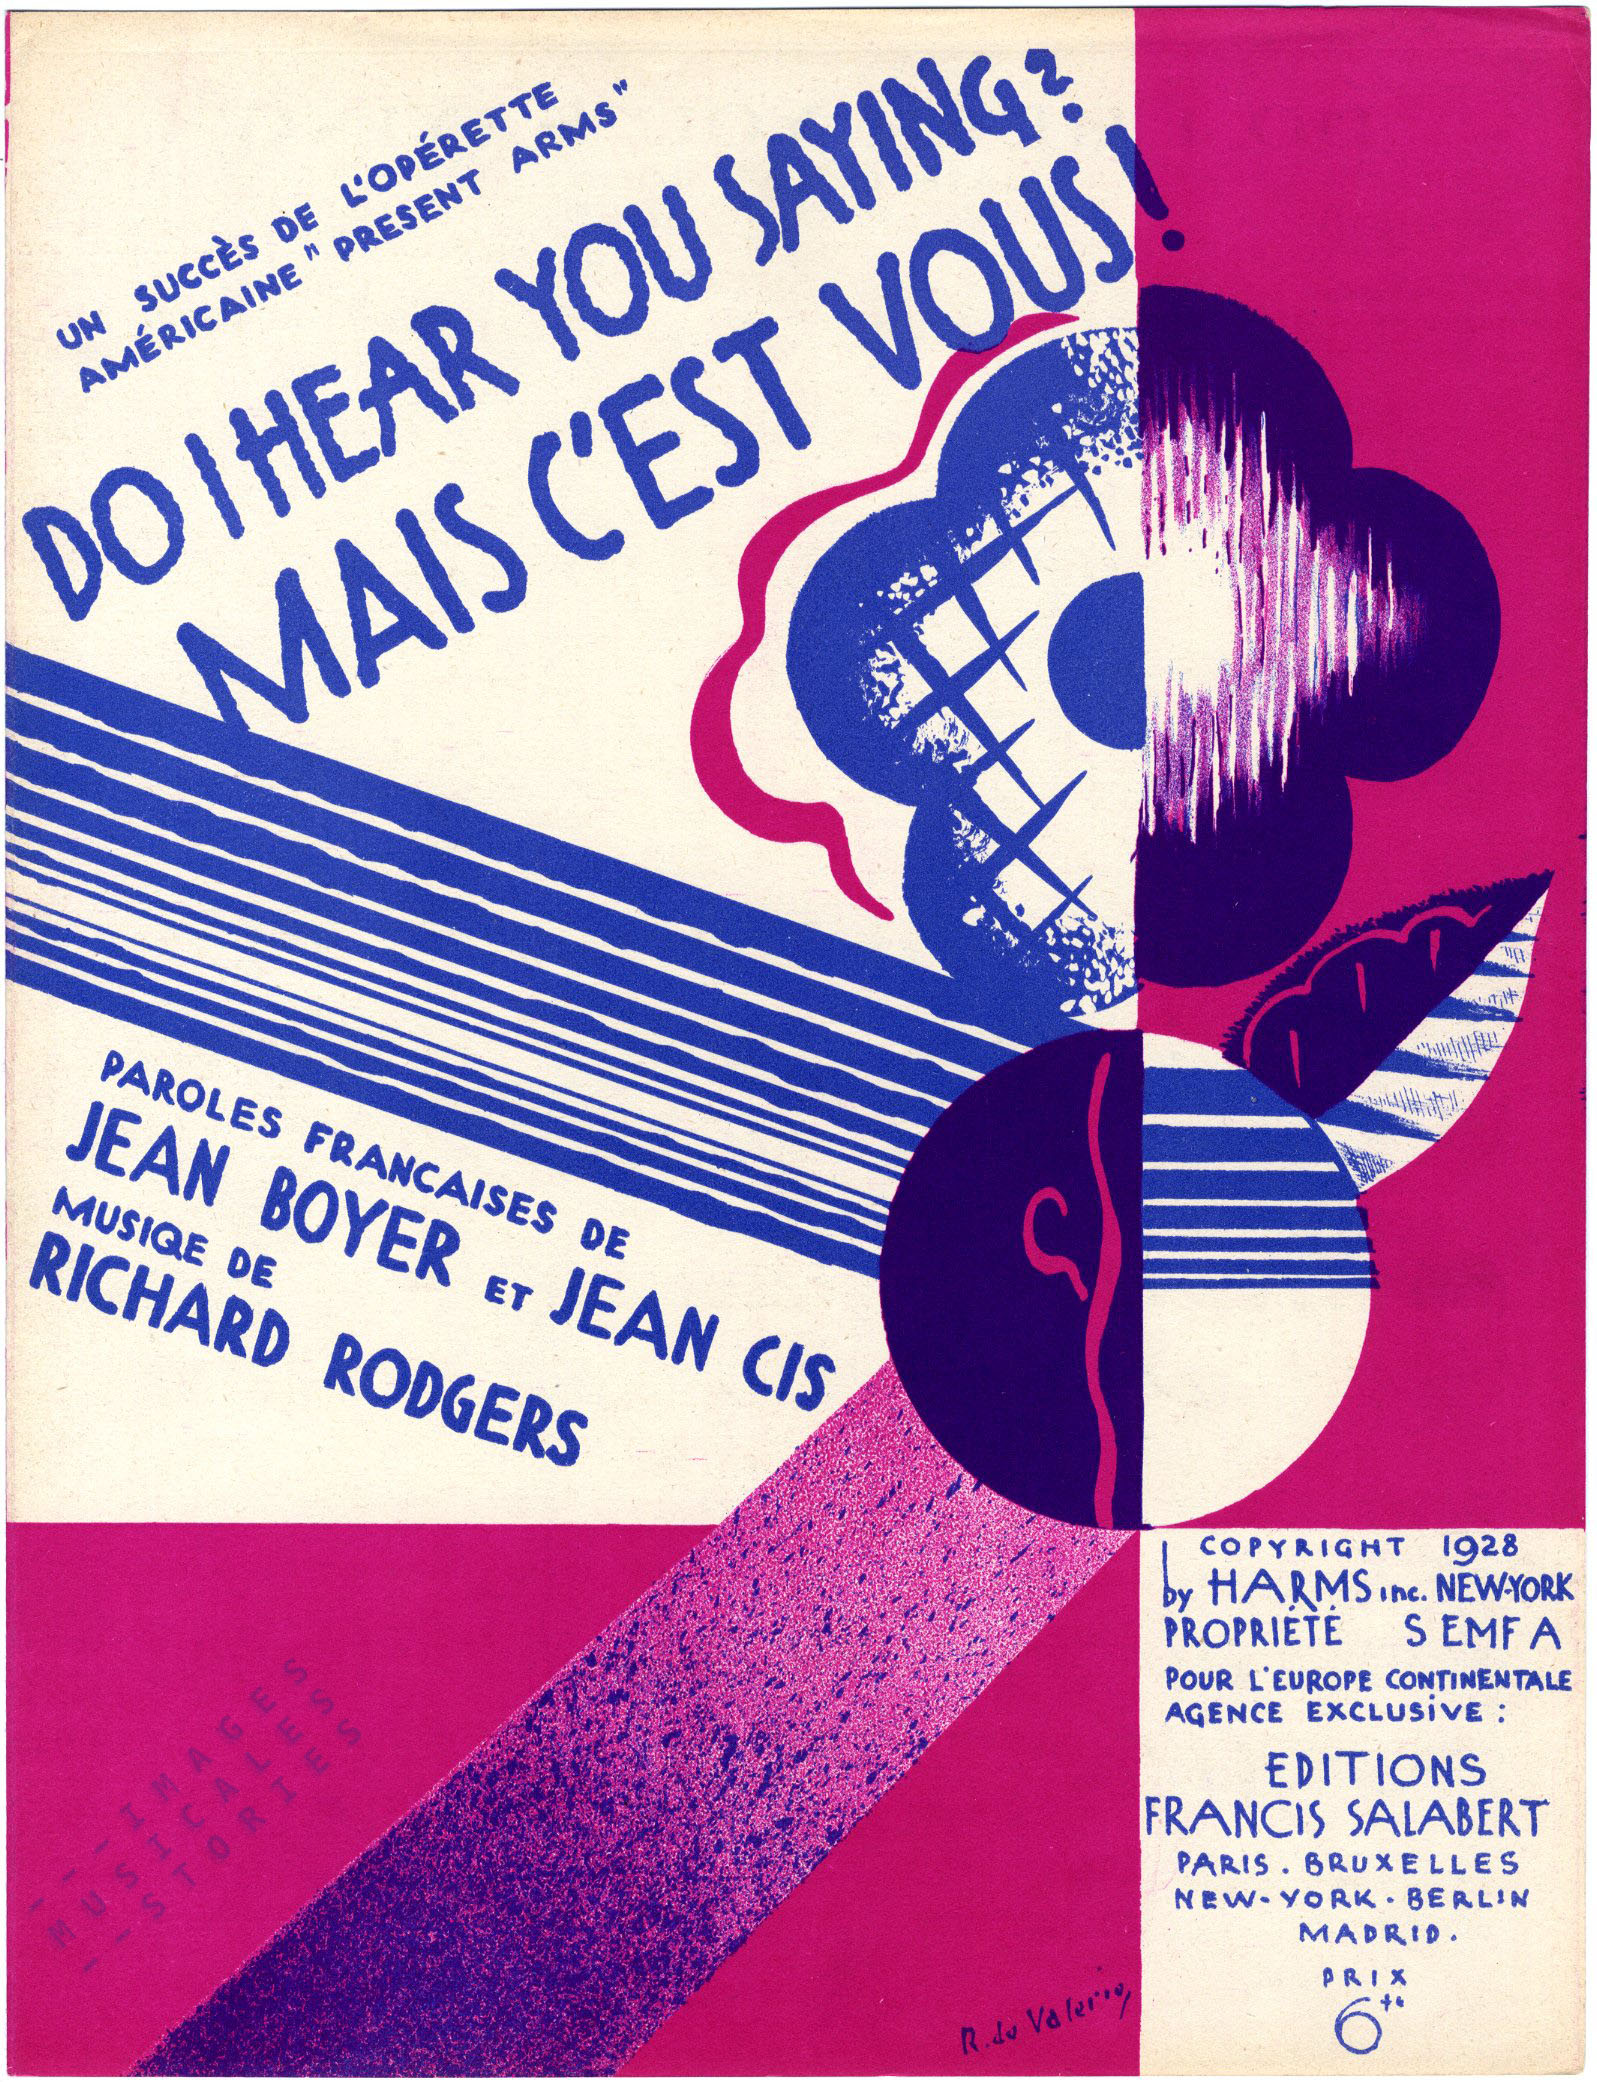 'Do I hear you saying?'. A cover design by Roger de Valerio (1928)